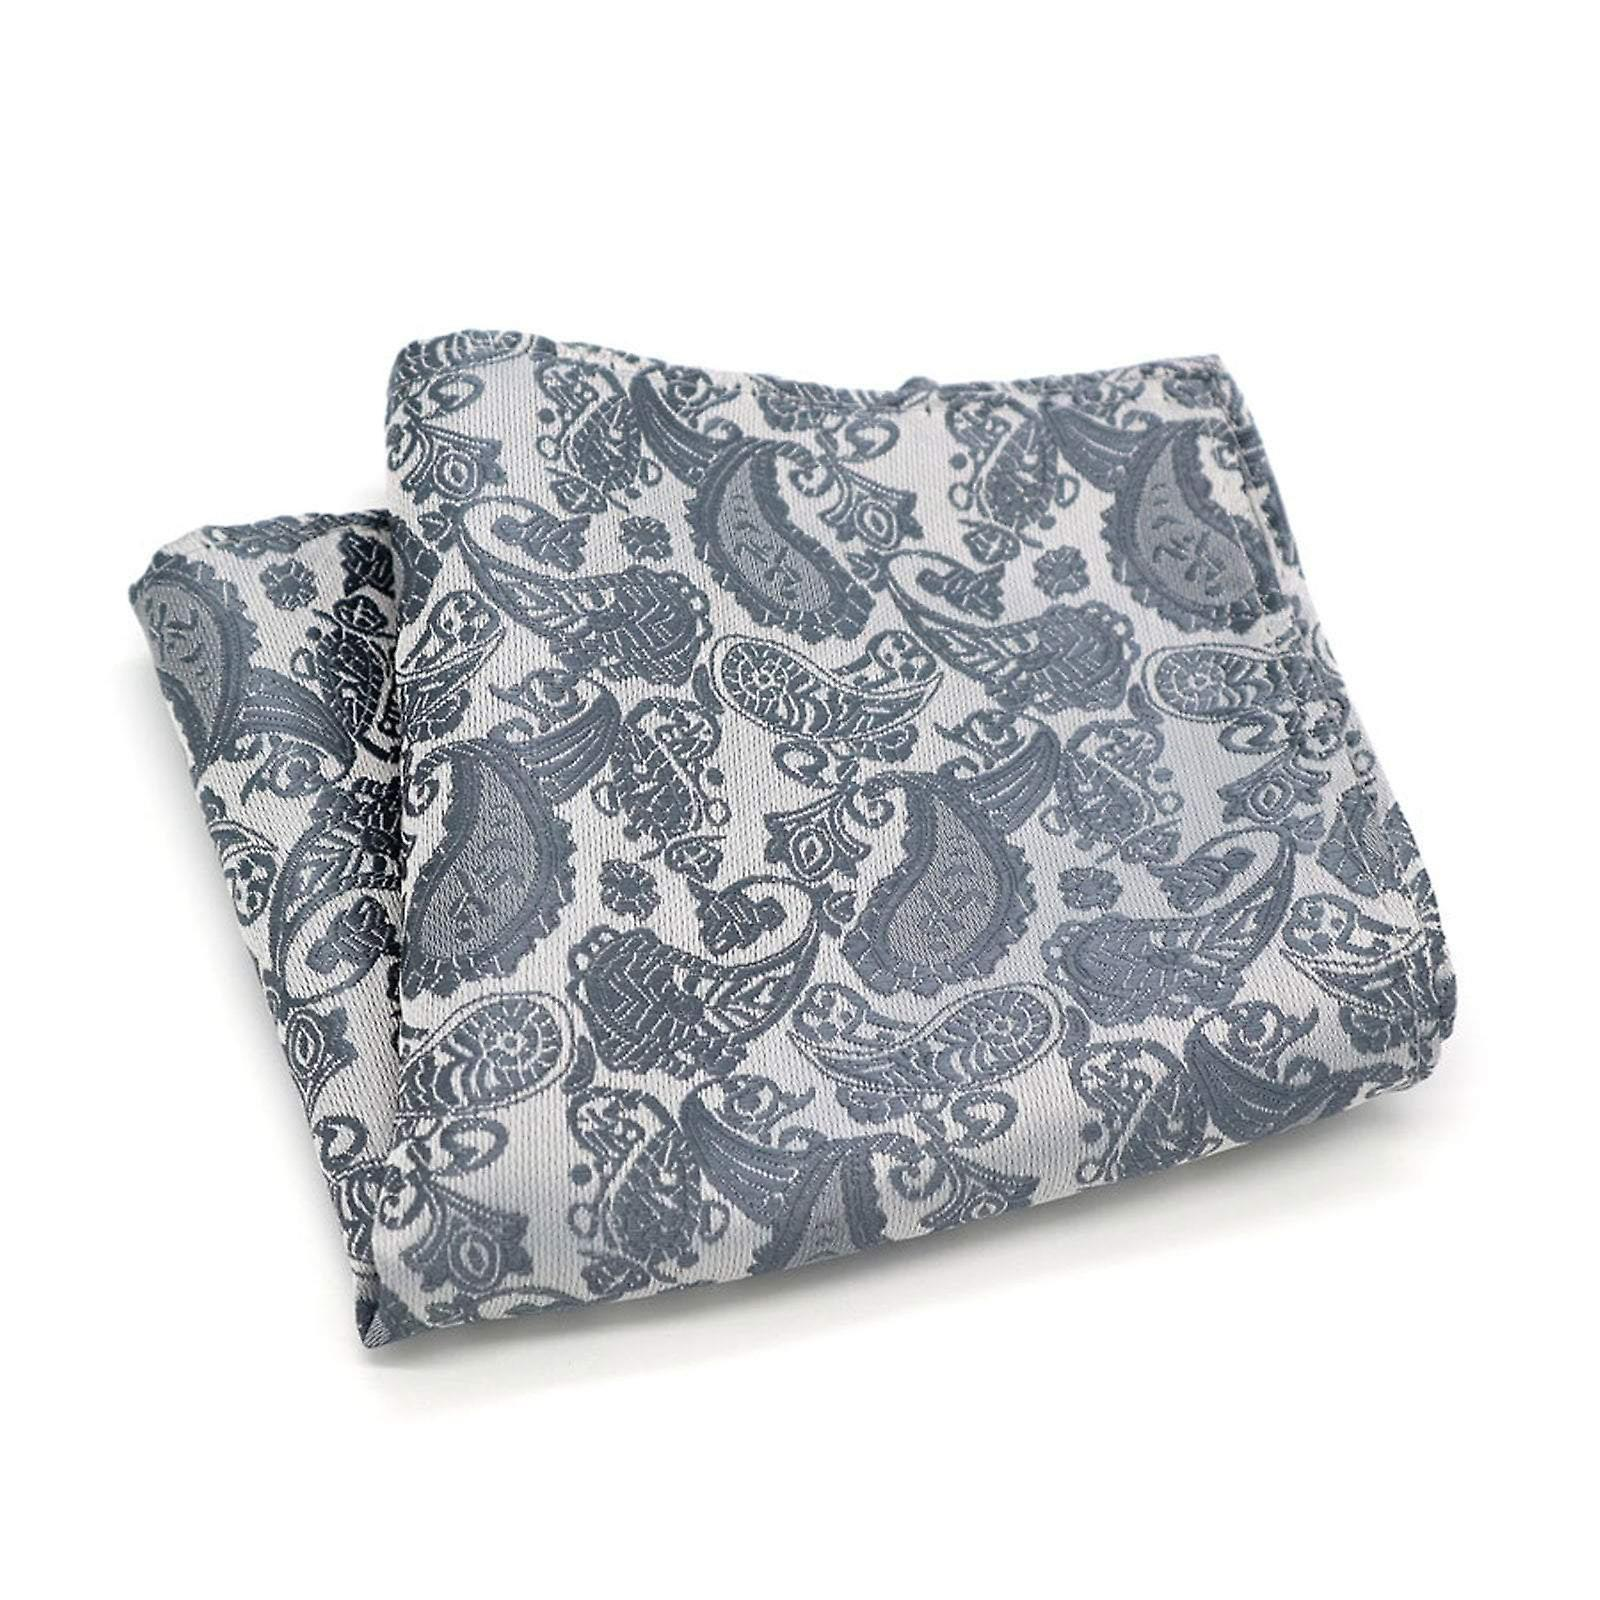 Light grey & silver paisley dinner event pocket square